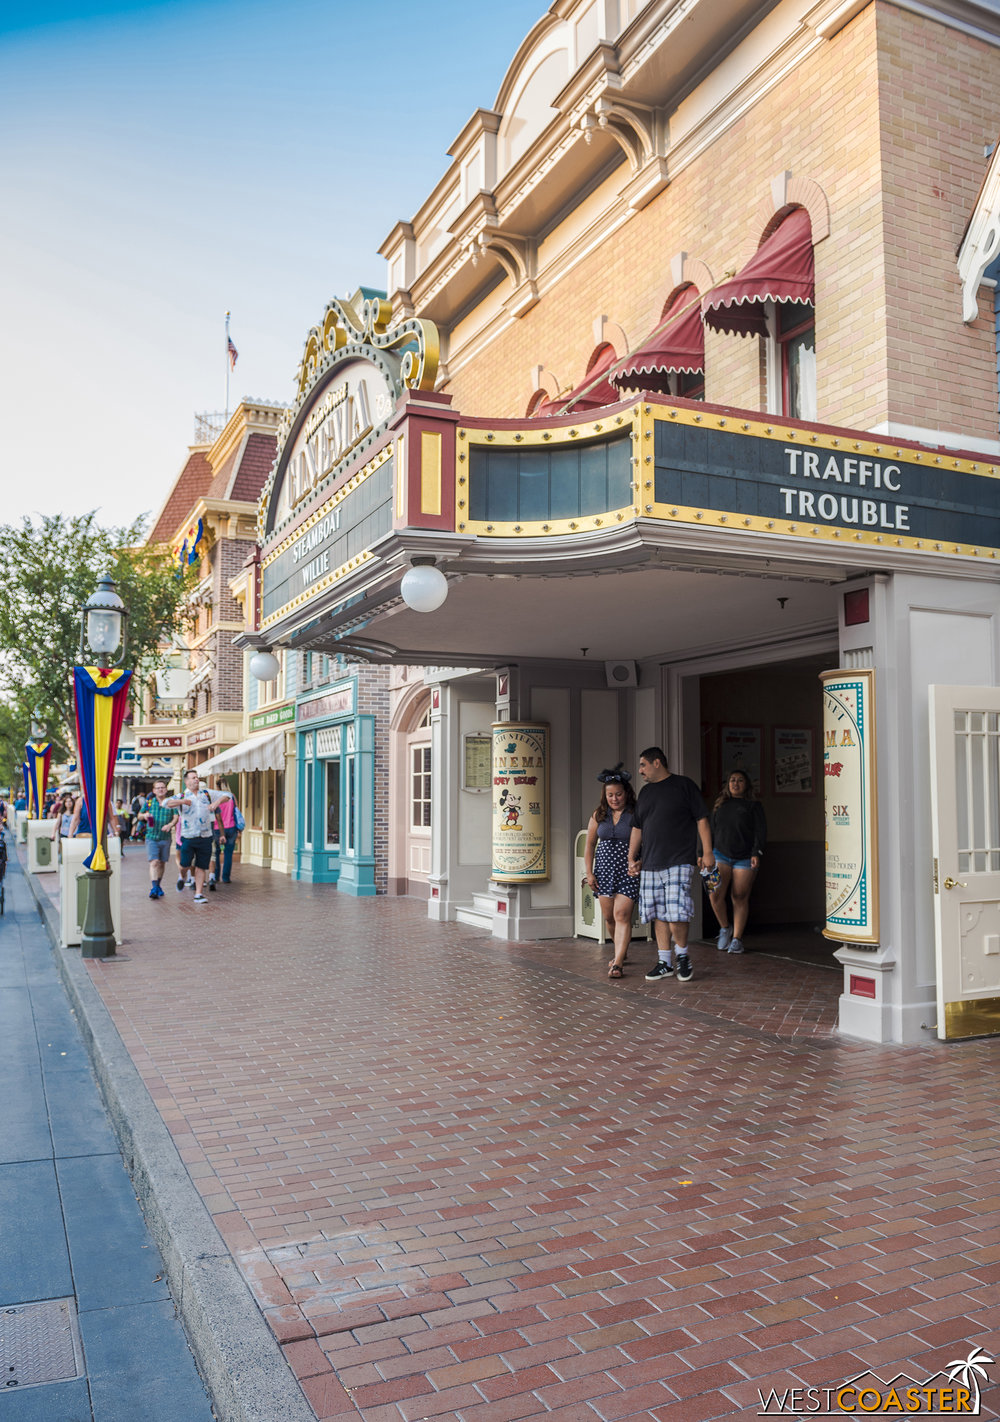 OH NOOOOEEEESSSS THE MAIN STREET INDIAN IS GONE!!!  But likely just for refurbishment. Otherwise, the brick patch job on the ground would have been better.